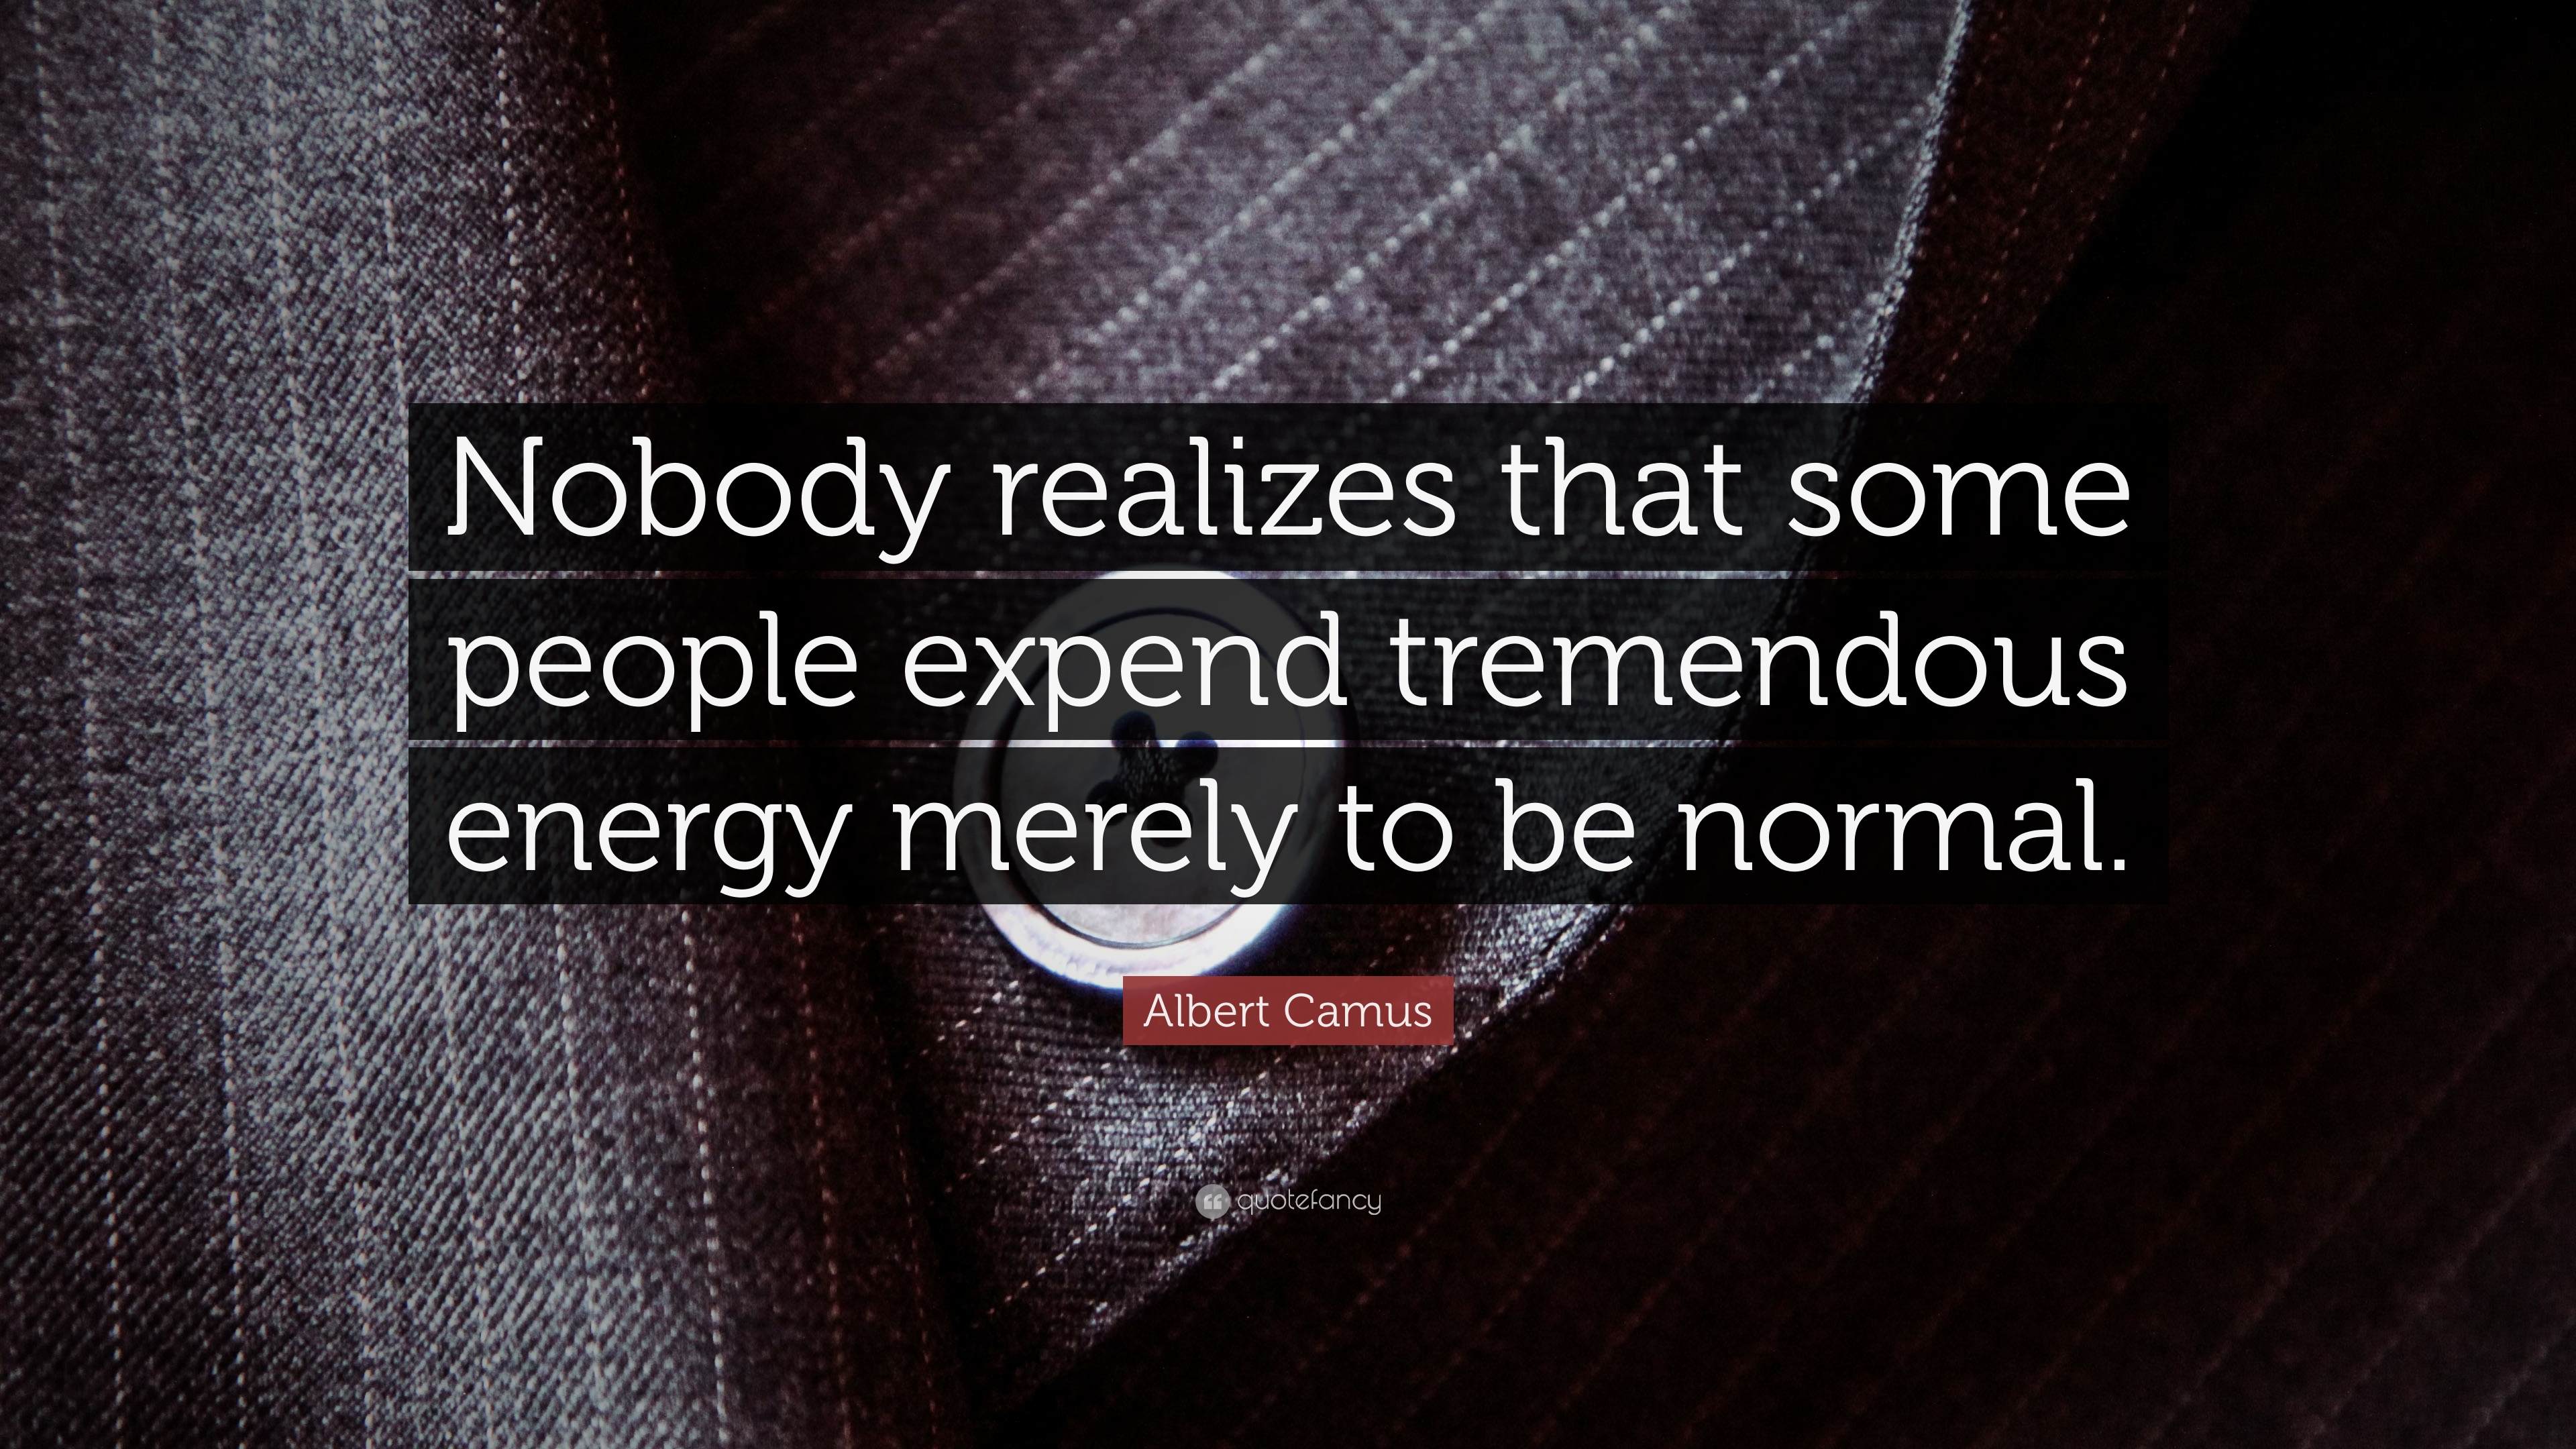 Albert camus quote about unique normal energy different - Albert Camus Quote Nobody Realizes That Some People Expend Tremendous Energy Merely To Be